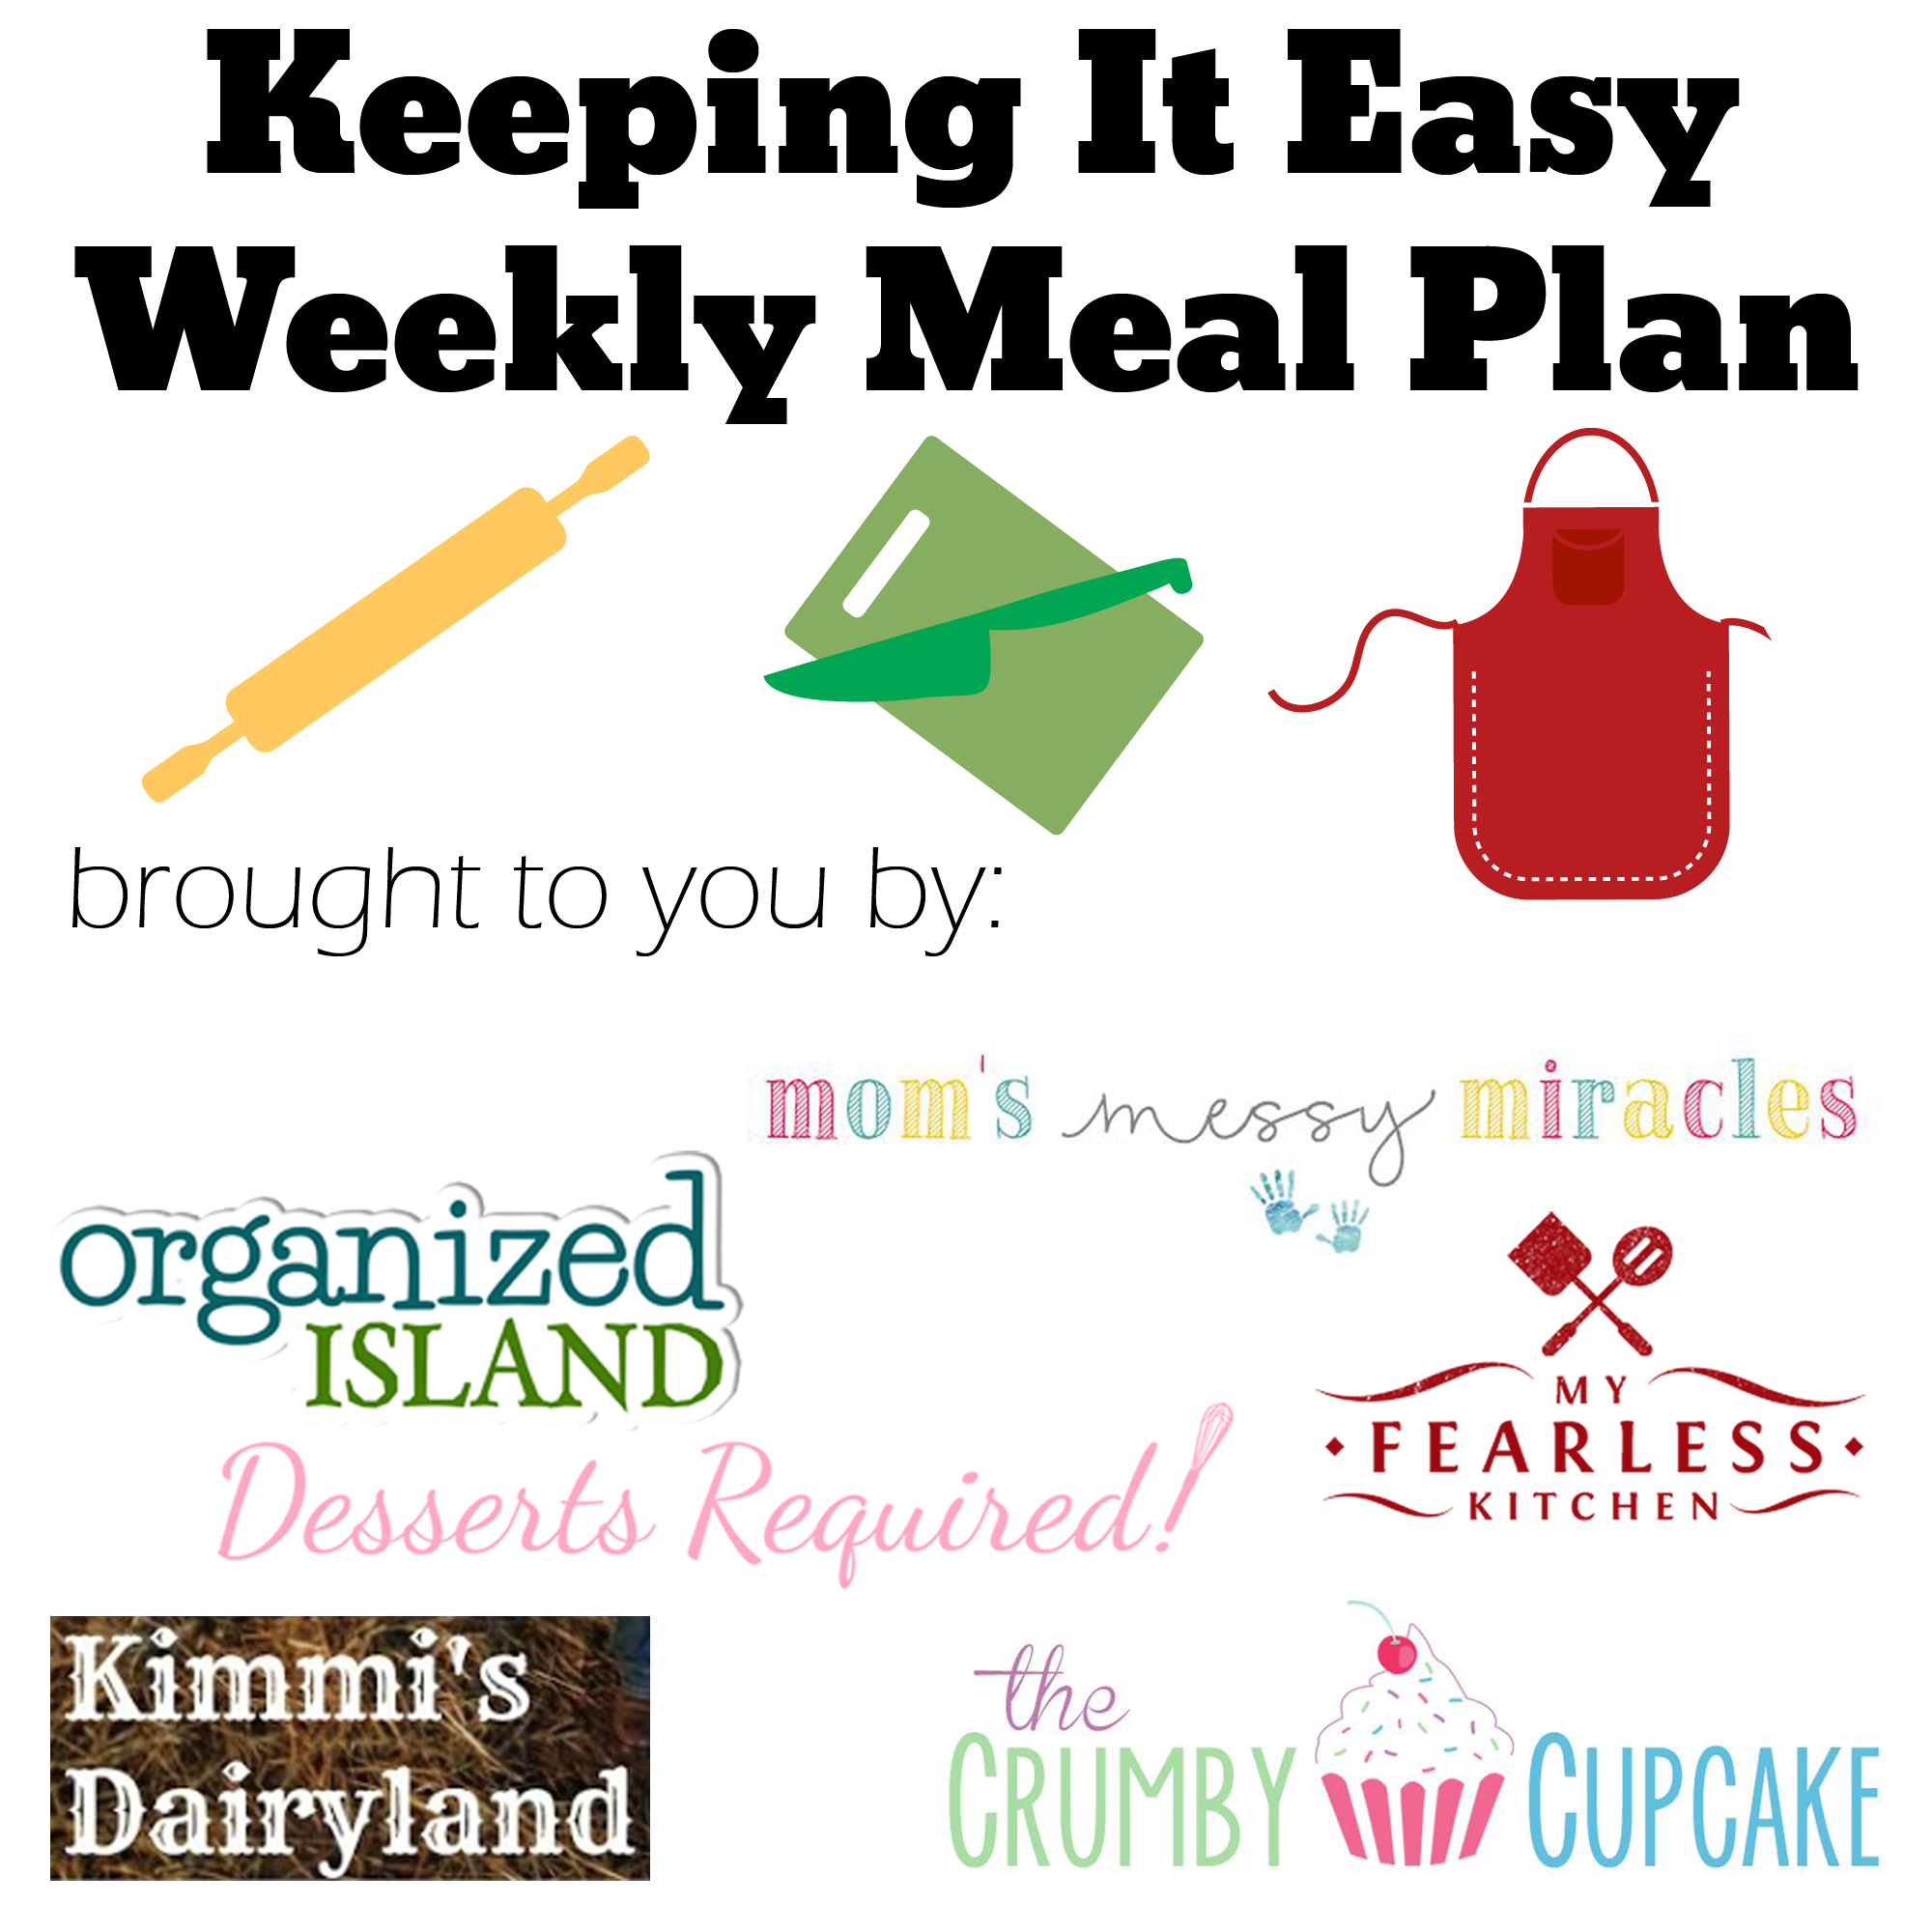 Keeping it Easy Weekly Meal Plan #3 from My Fearless Kitchen. This week's meal plan includes Easy Fettuccini Alfredo, Caramel Apple Pork Chops, Slow Cooker Pulled Pork Sliders, Crock Pot Roasted Tomato Bacon Bisque, Fall-Off-The-Bone Roast Chicken, Monkey Bread, and Guava Cheesecake.